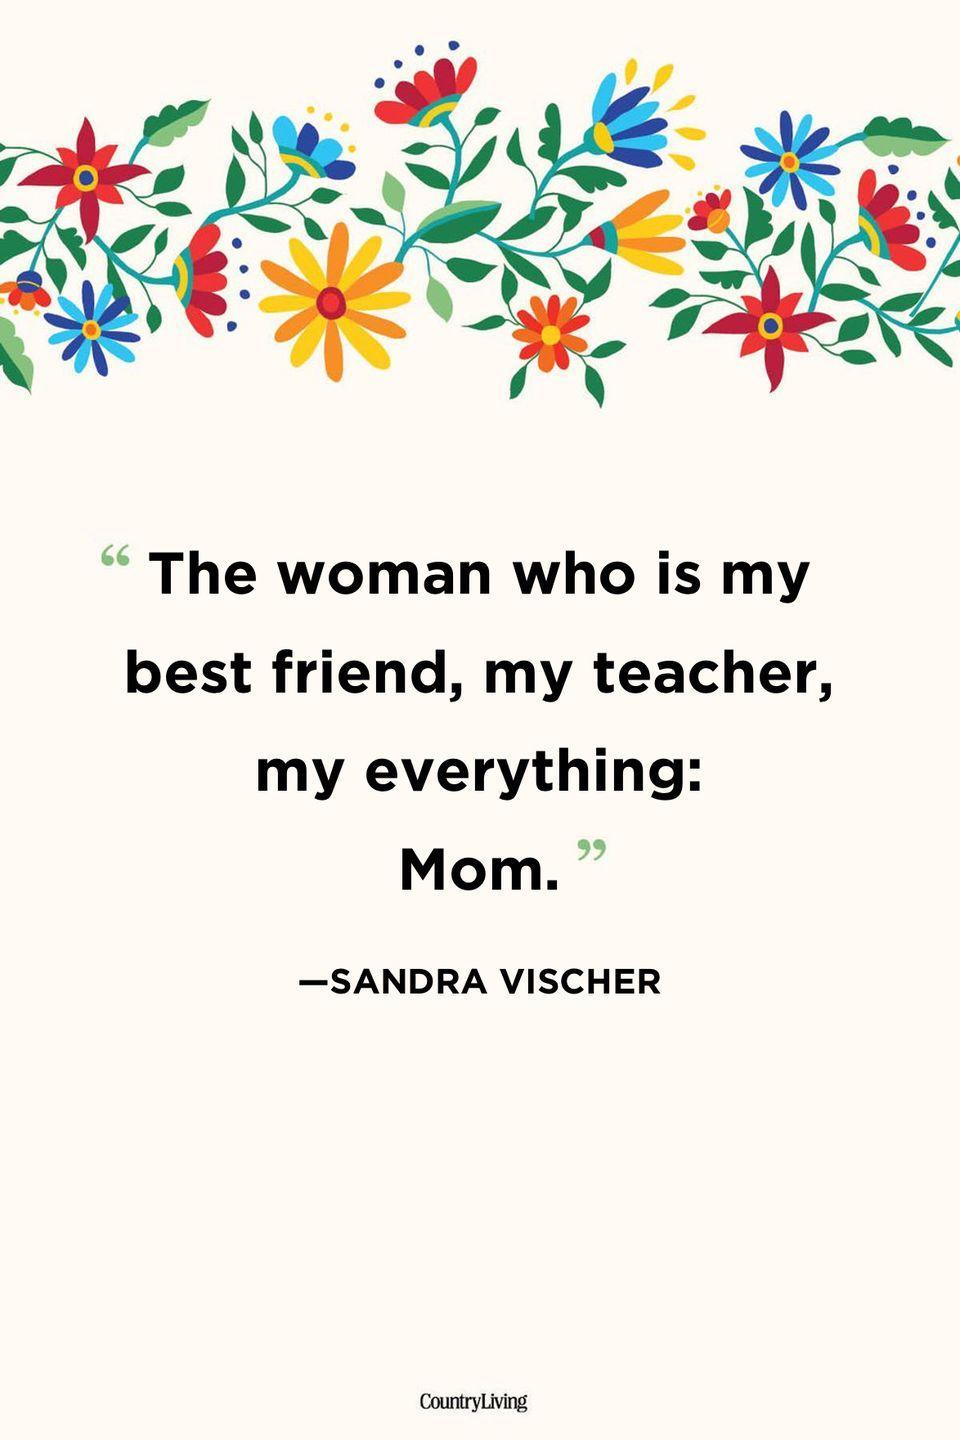 """<p>""""The woman who is my best friend, my teacher, my everything: Mom.""""</p>"""